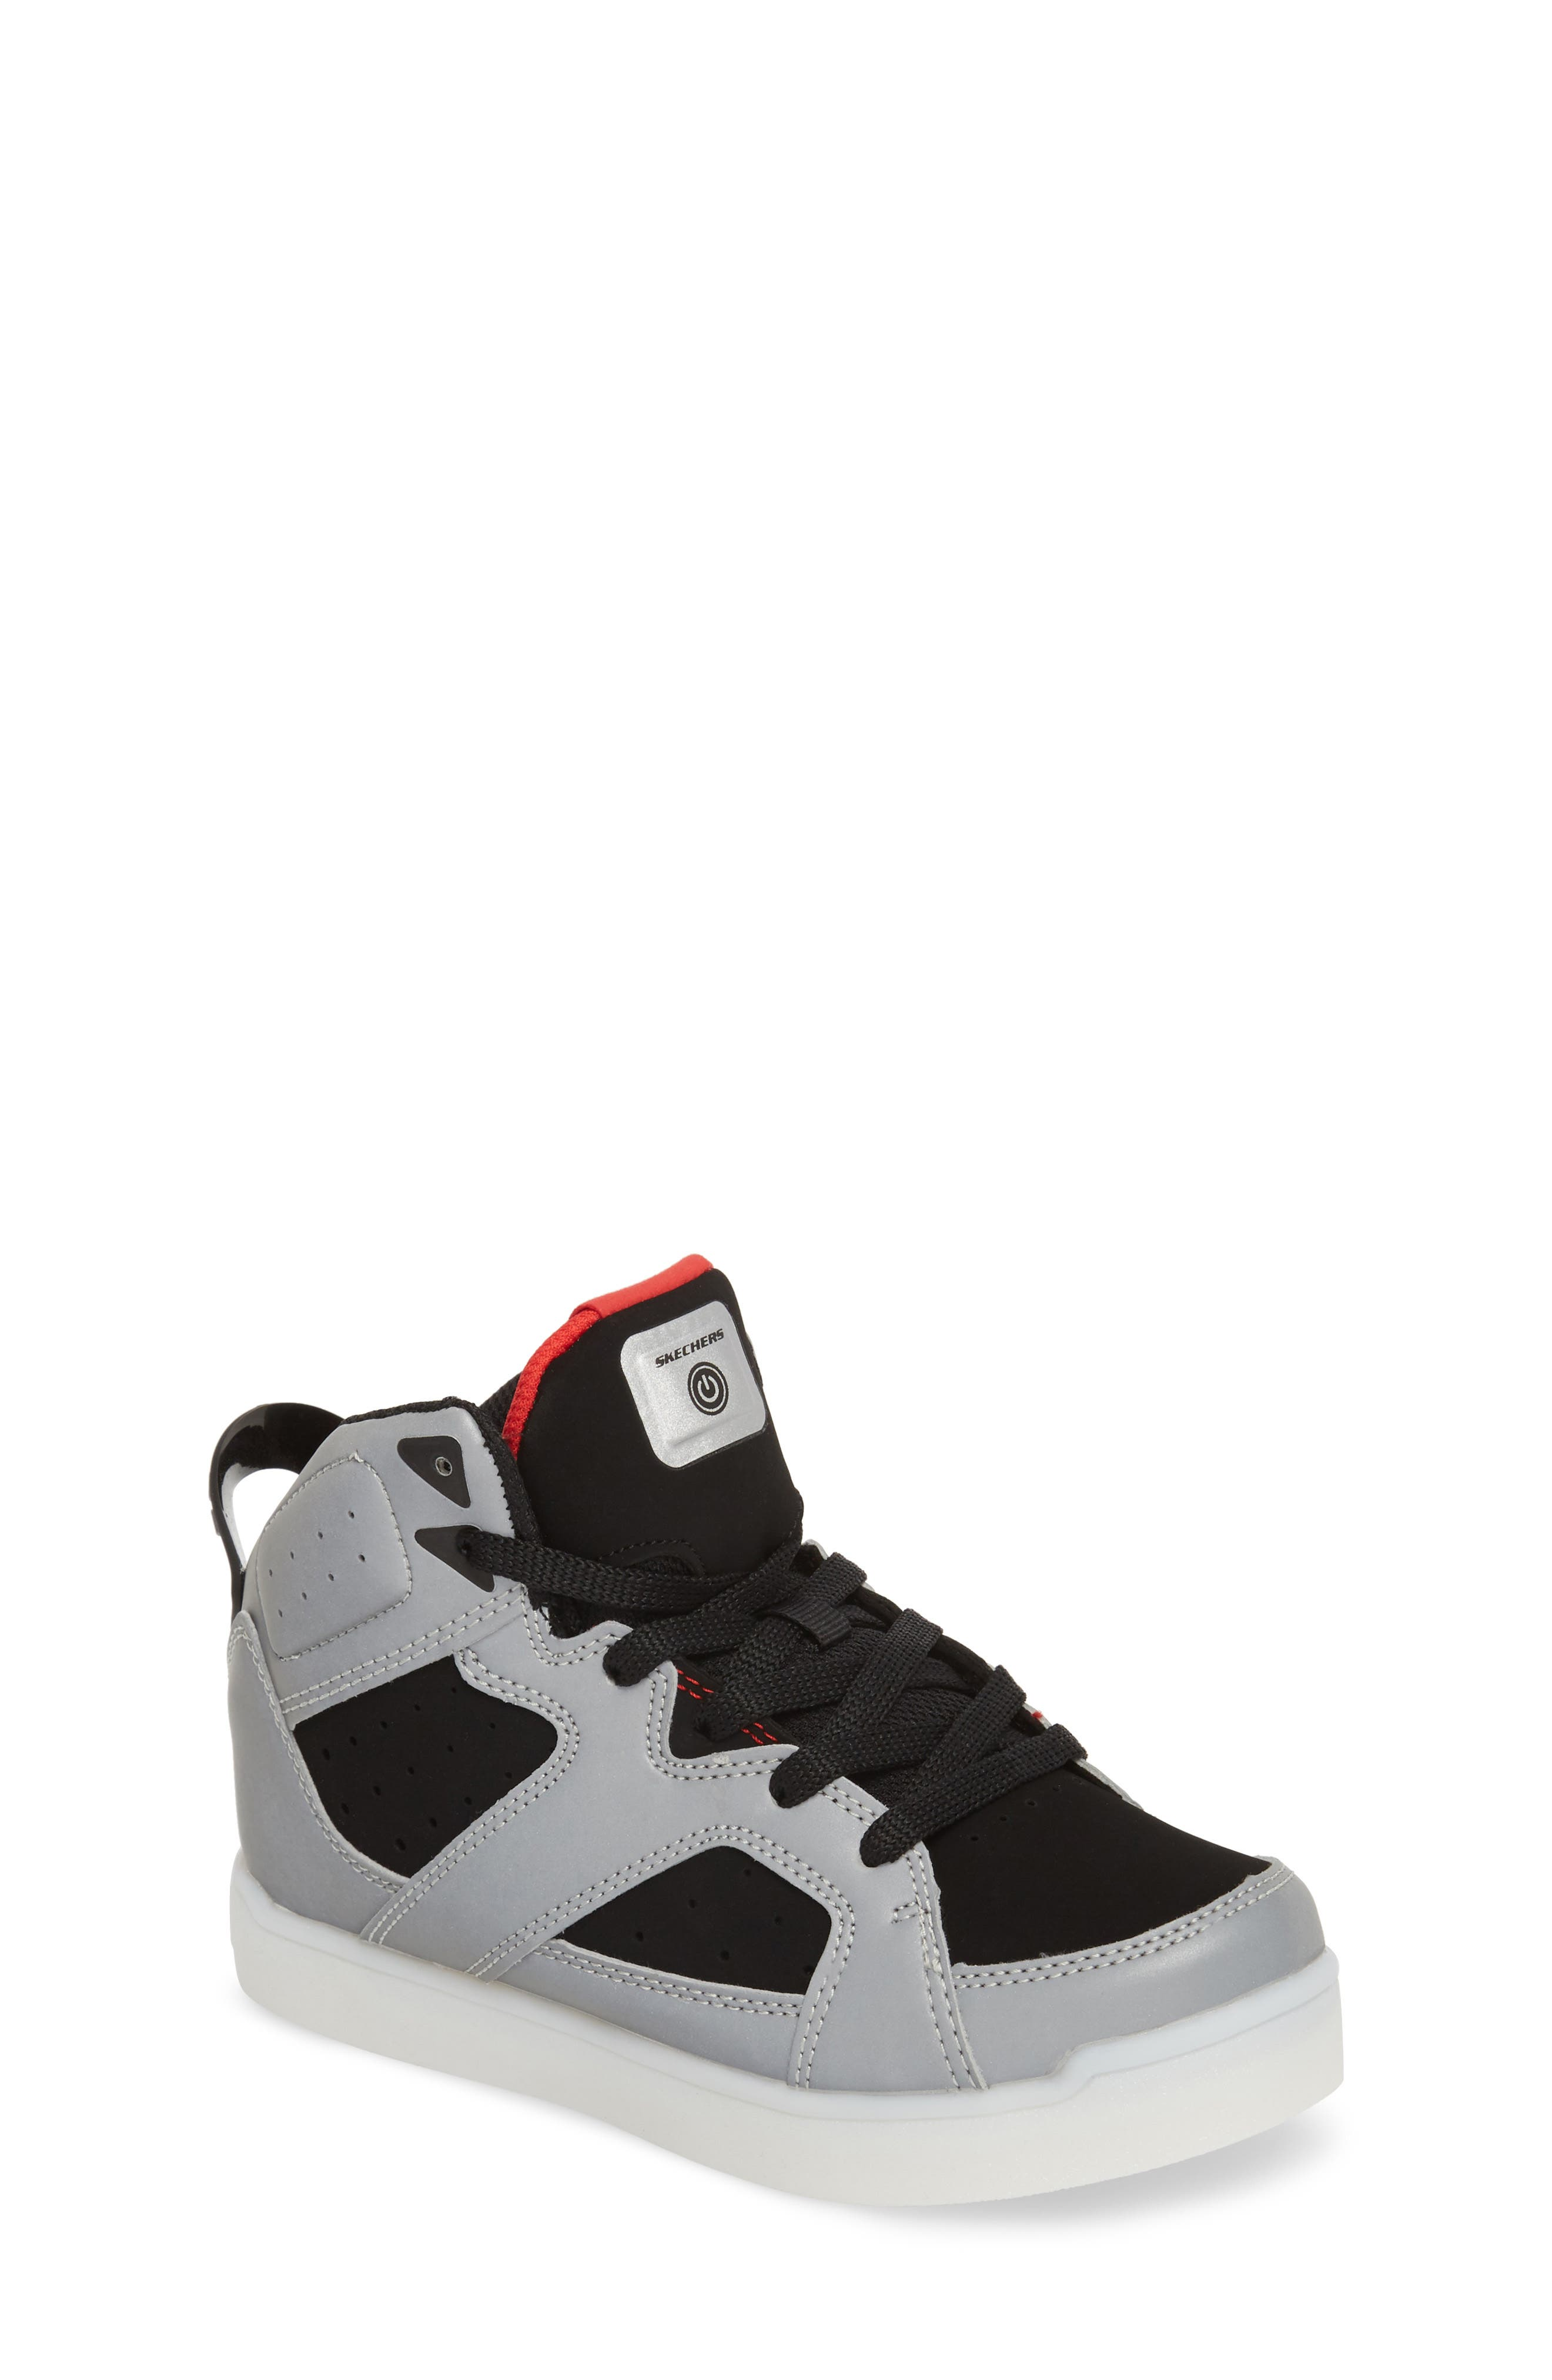 Energy Lights Pro Show Stopper High Top Sneaker,                             Main thumbnail 1, color,                             040